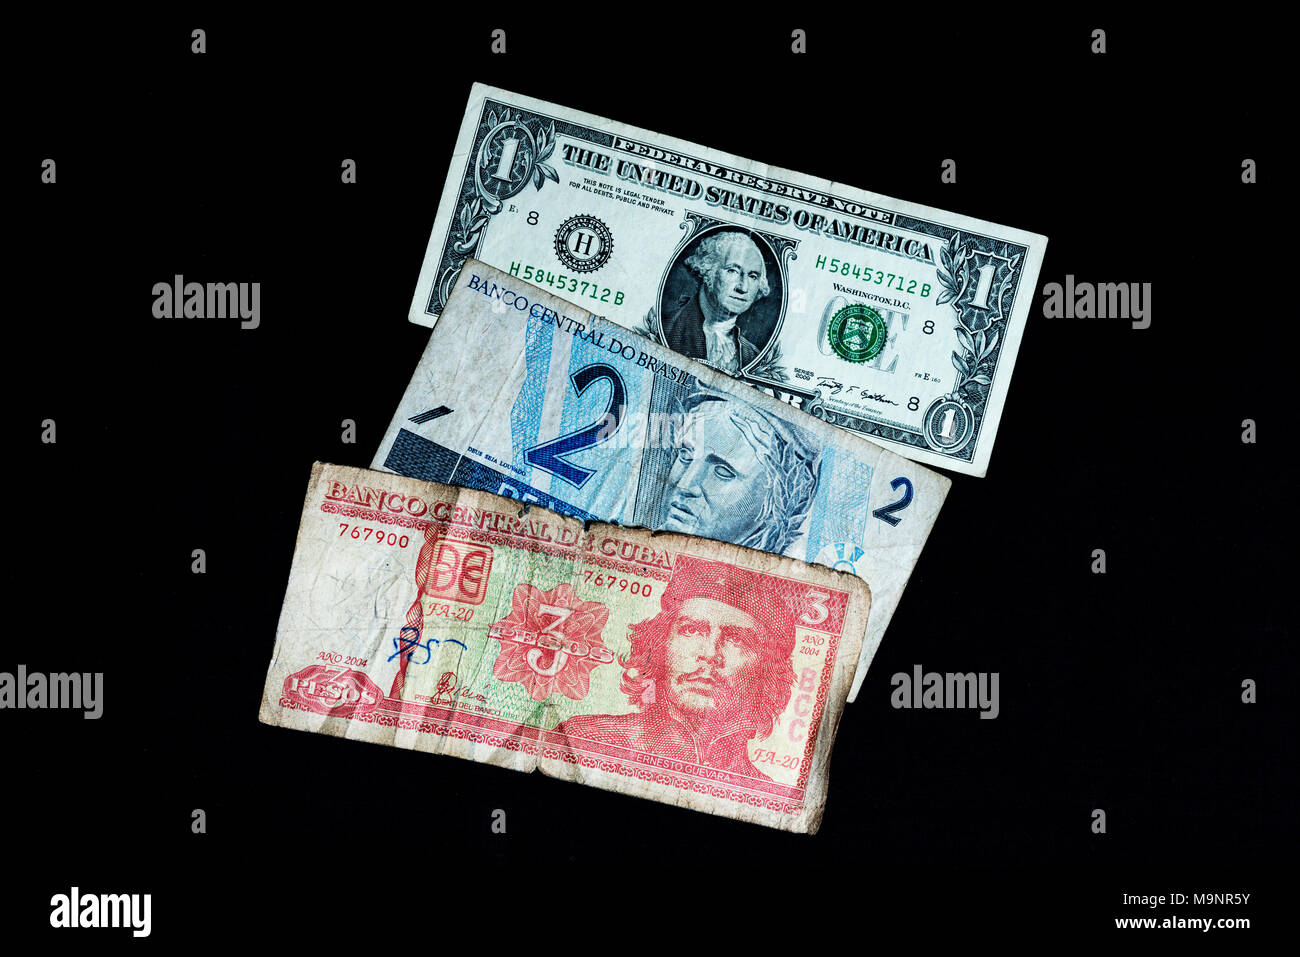 Real brazil currency symbol icon stock photos real brazil currency money from cuba usa and brazil old notes of low denomination stock image buycottarizona Images